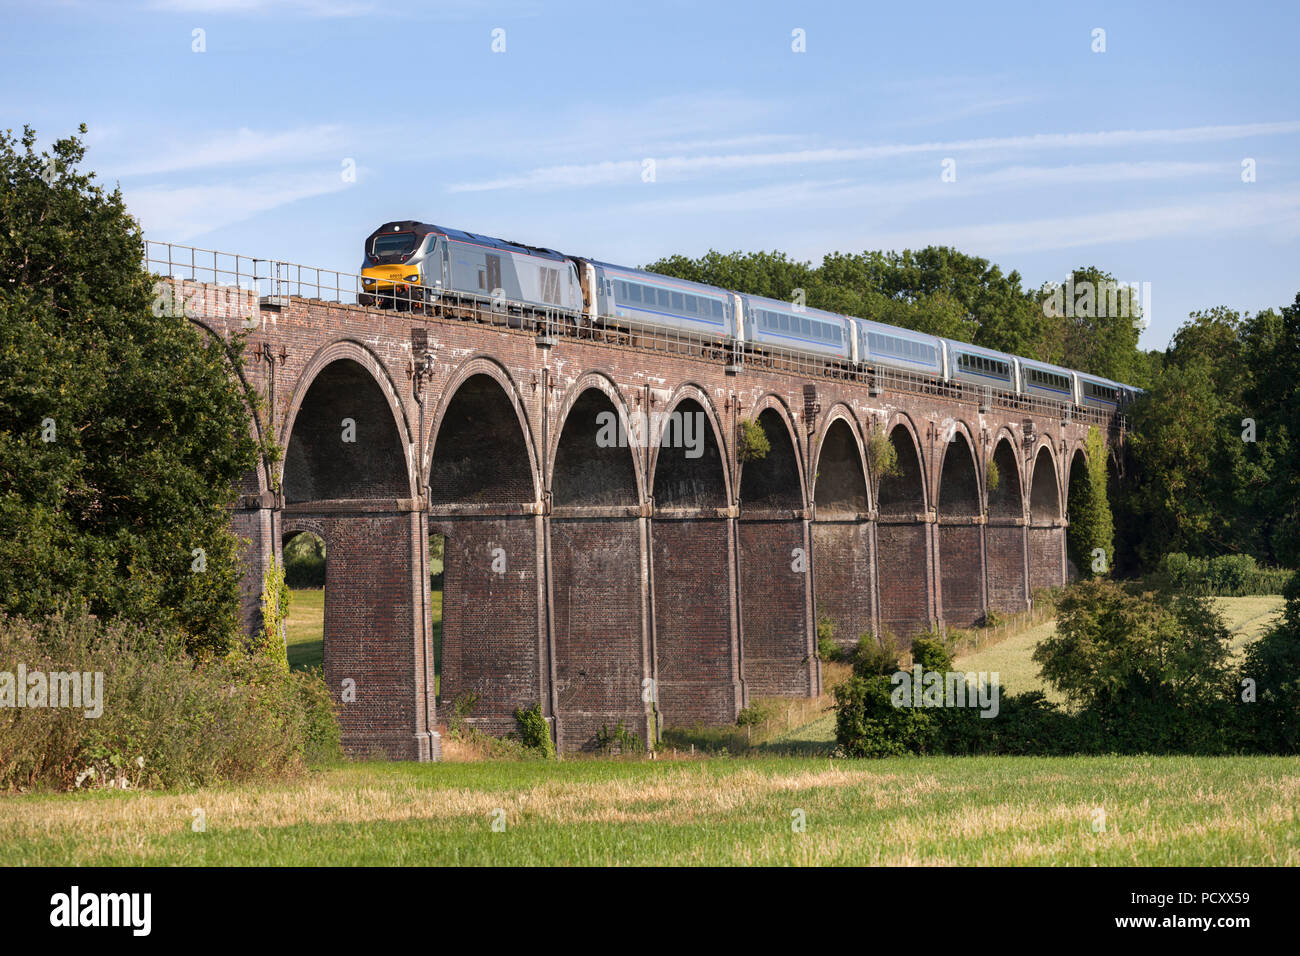 A Chiltern railways class 68 locomotive crosses  Saunderton Viaduct (south of Banbury) with a Chiltern railways mainline express train - Stock Image